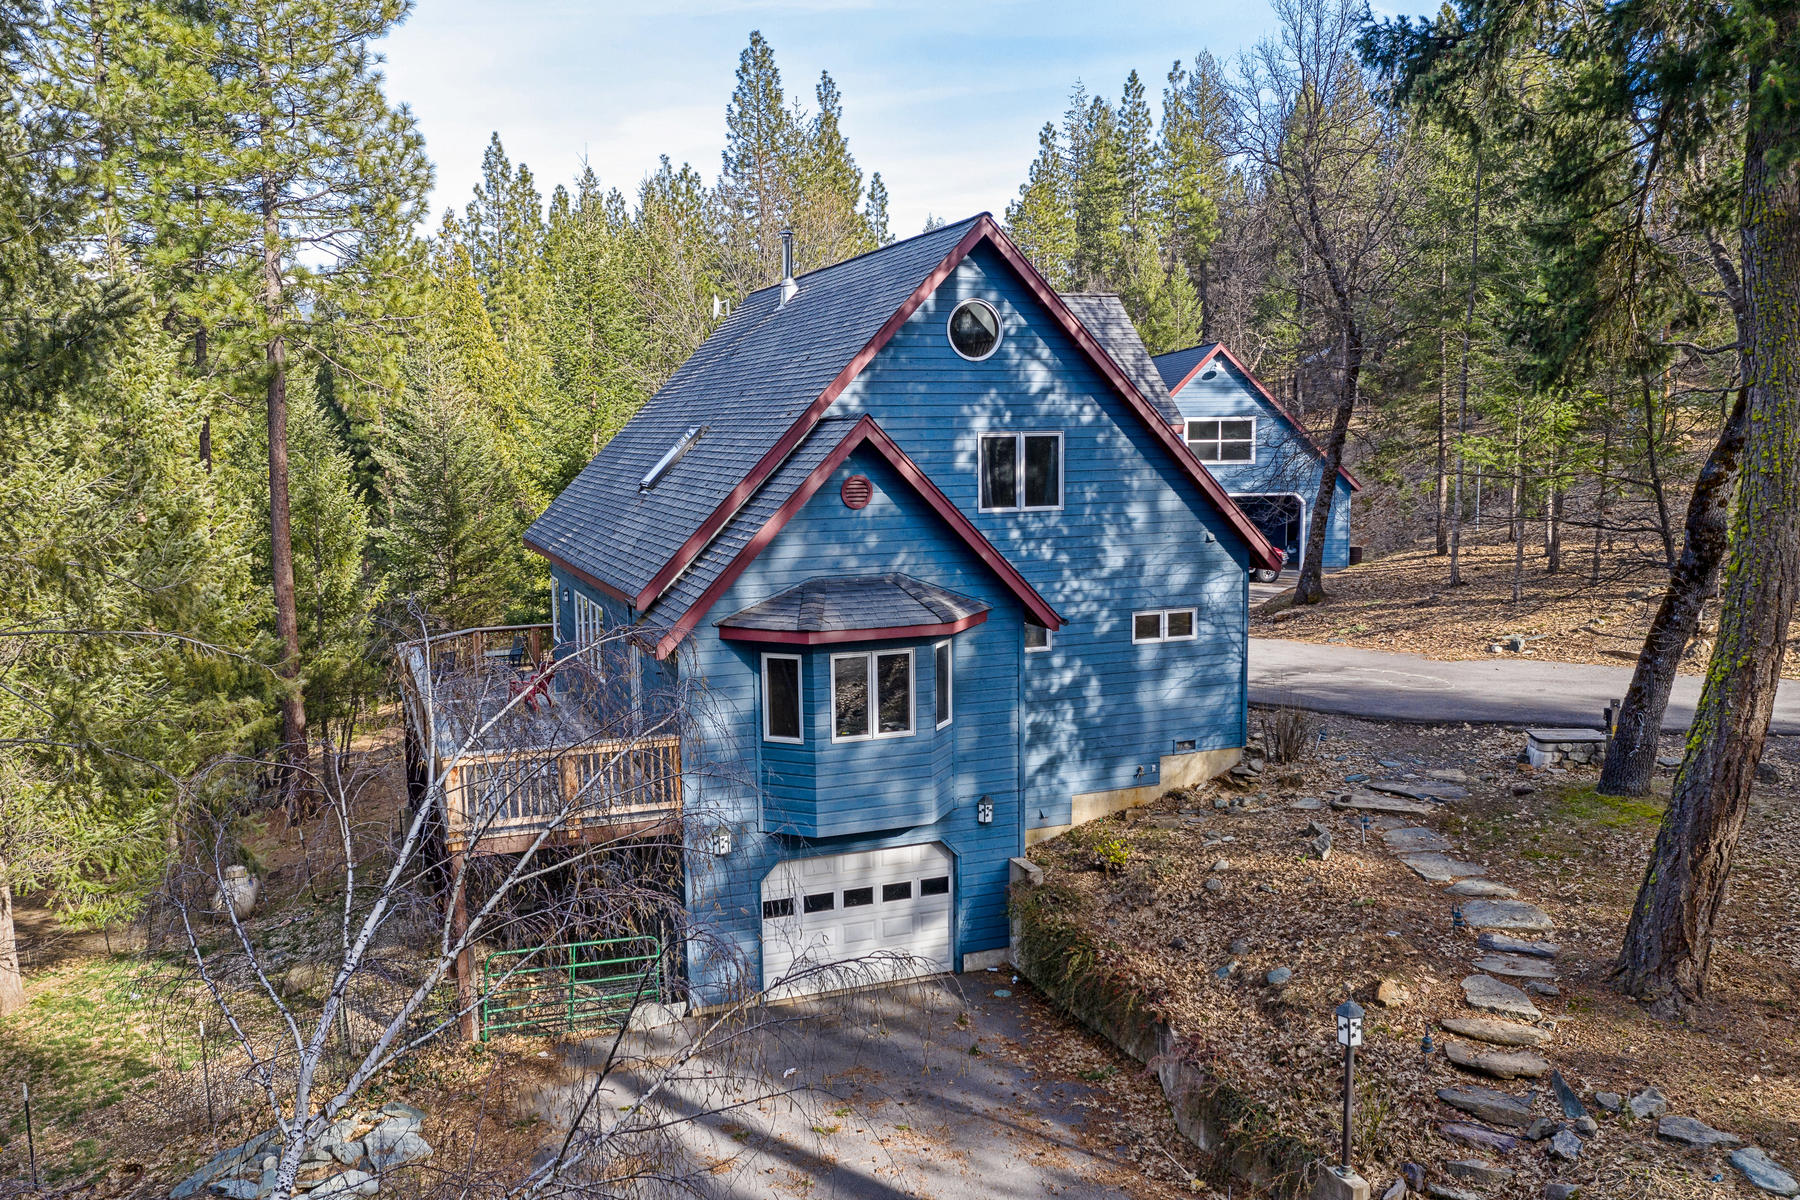 Additional photo for property listing at 2425 Ridgerun Road, Quincy, CA 95971 2425 Ridgerun Road Quincy, California 95971 United States